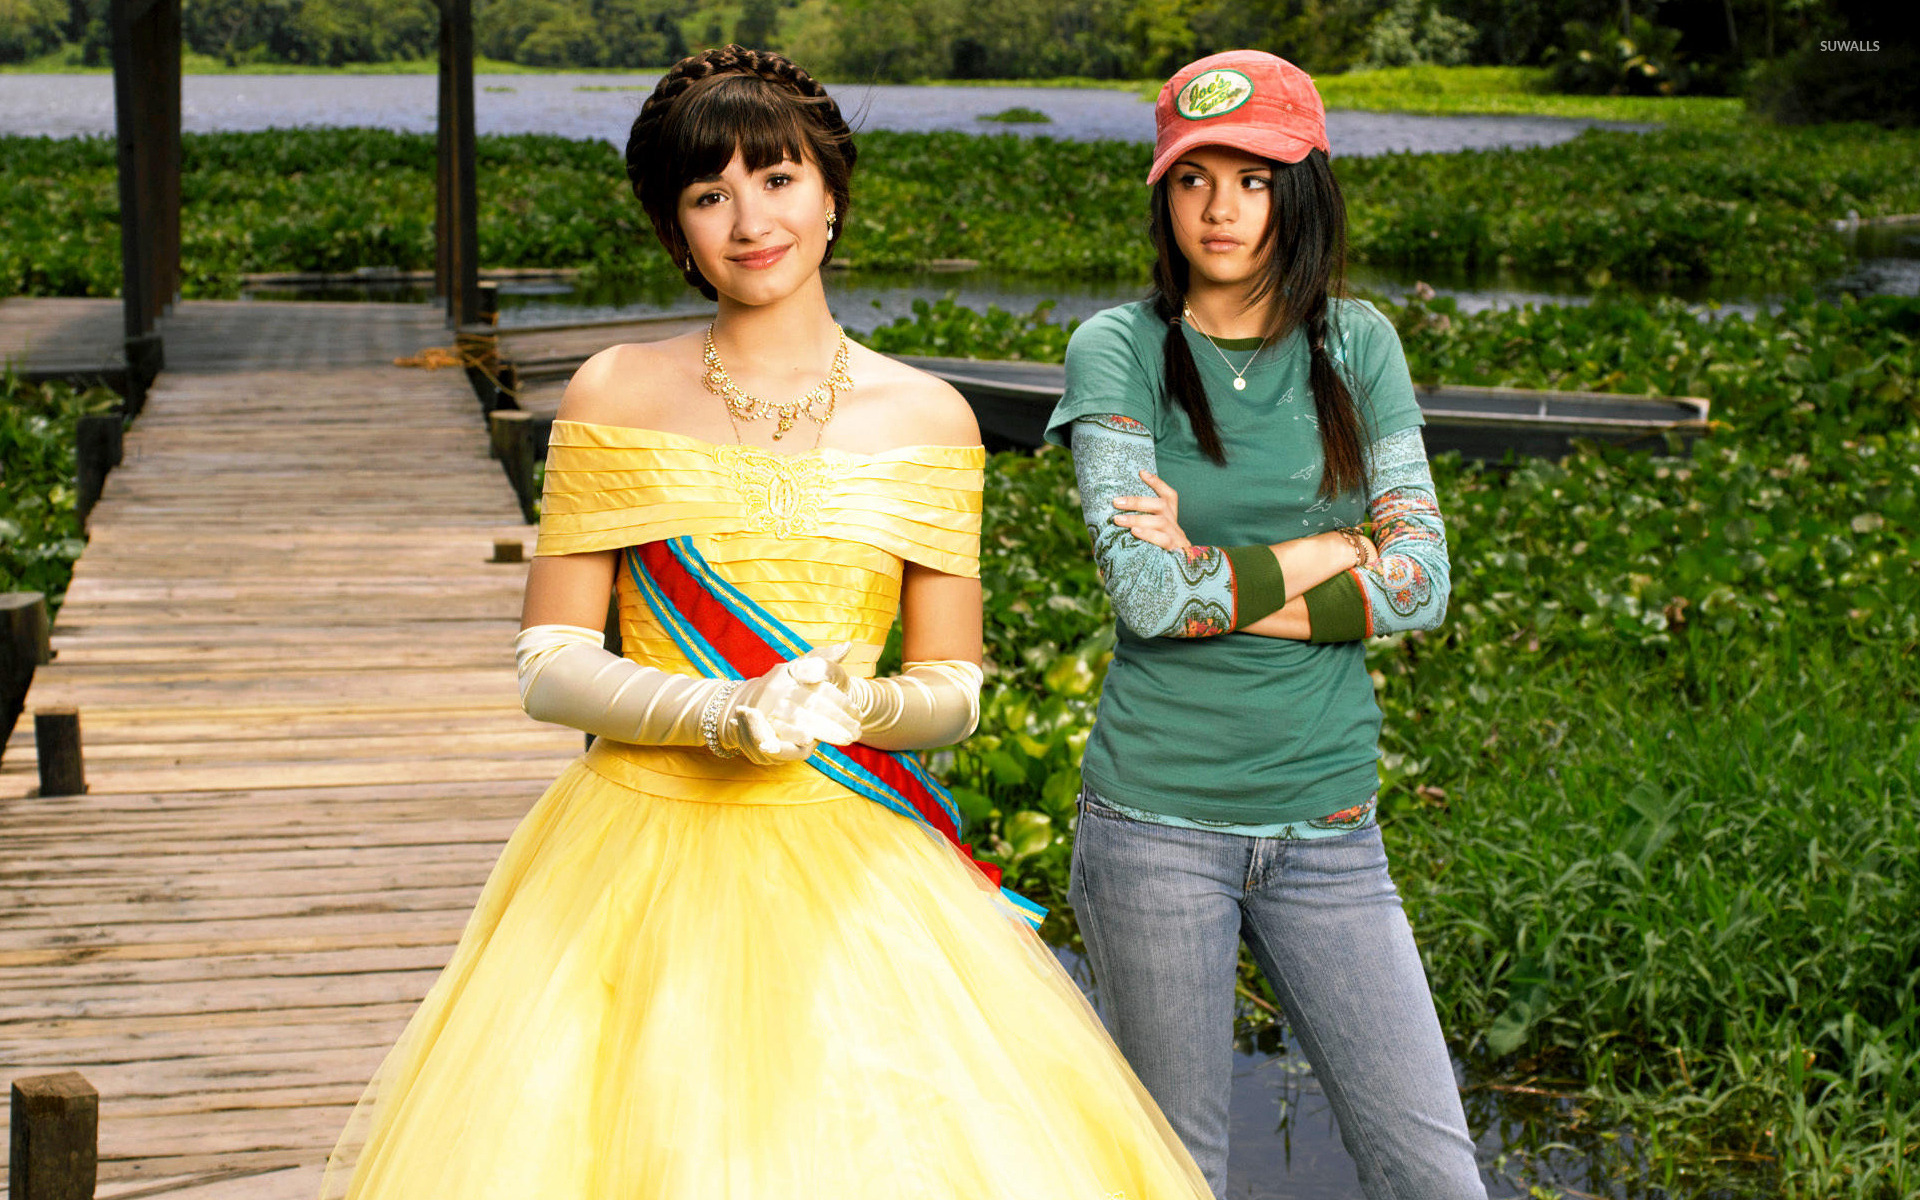 Image result for princess protection program